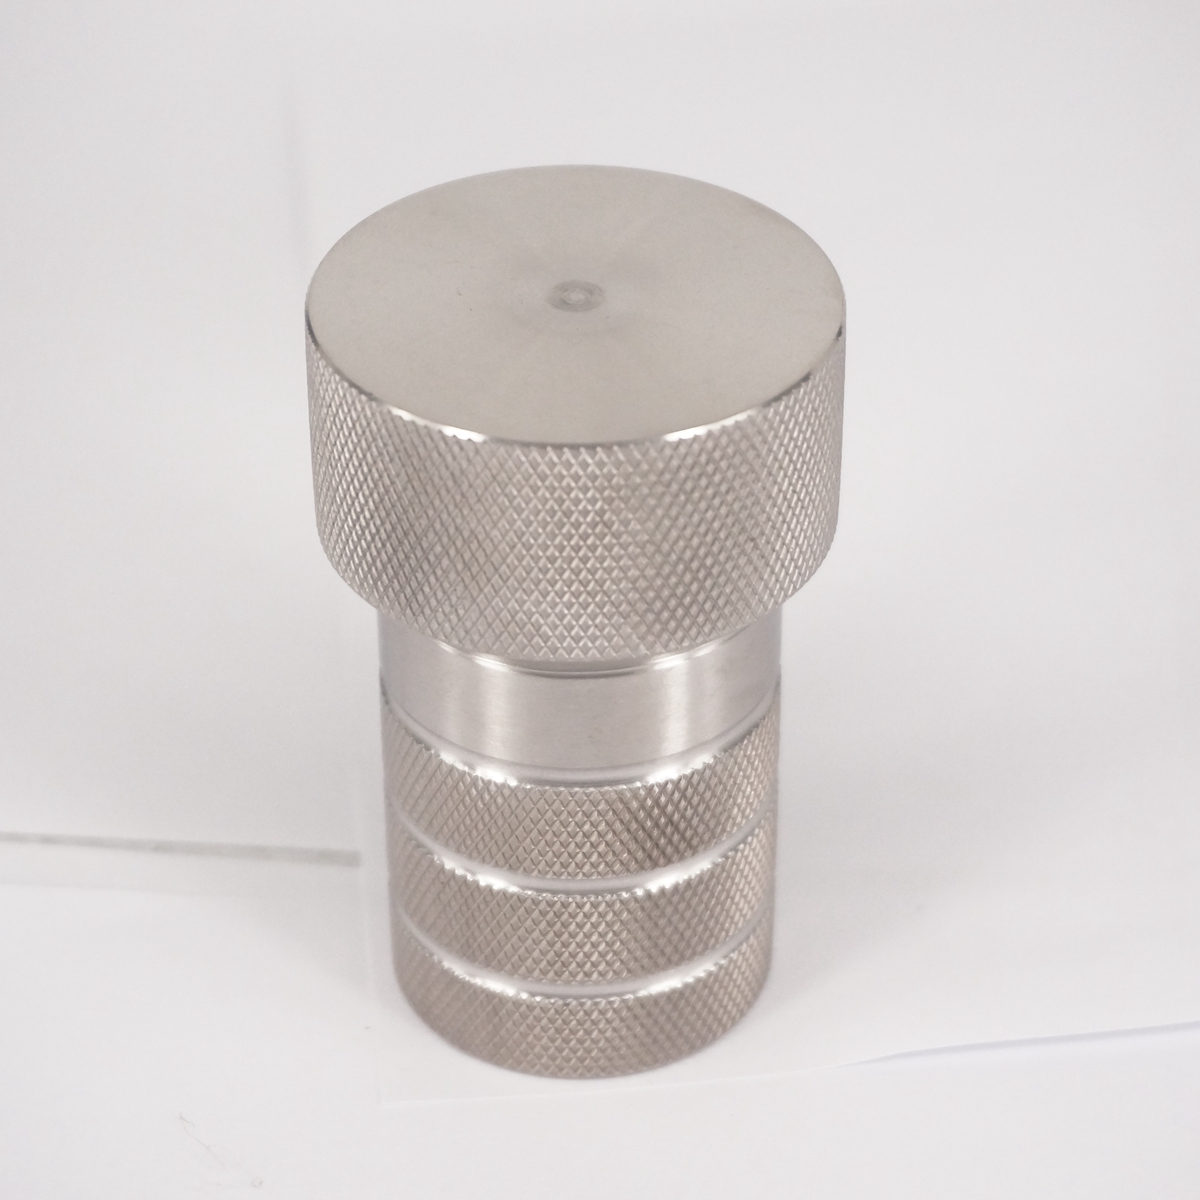 Teflon Lined Hydrothermal Synthesis Autoclave Reactor 15ml PTFE Lined Vessel Inner Sleeve High Pressure Digestion Tank ruminant feeds evaluation for microbial biomass synthesis efficiency